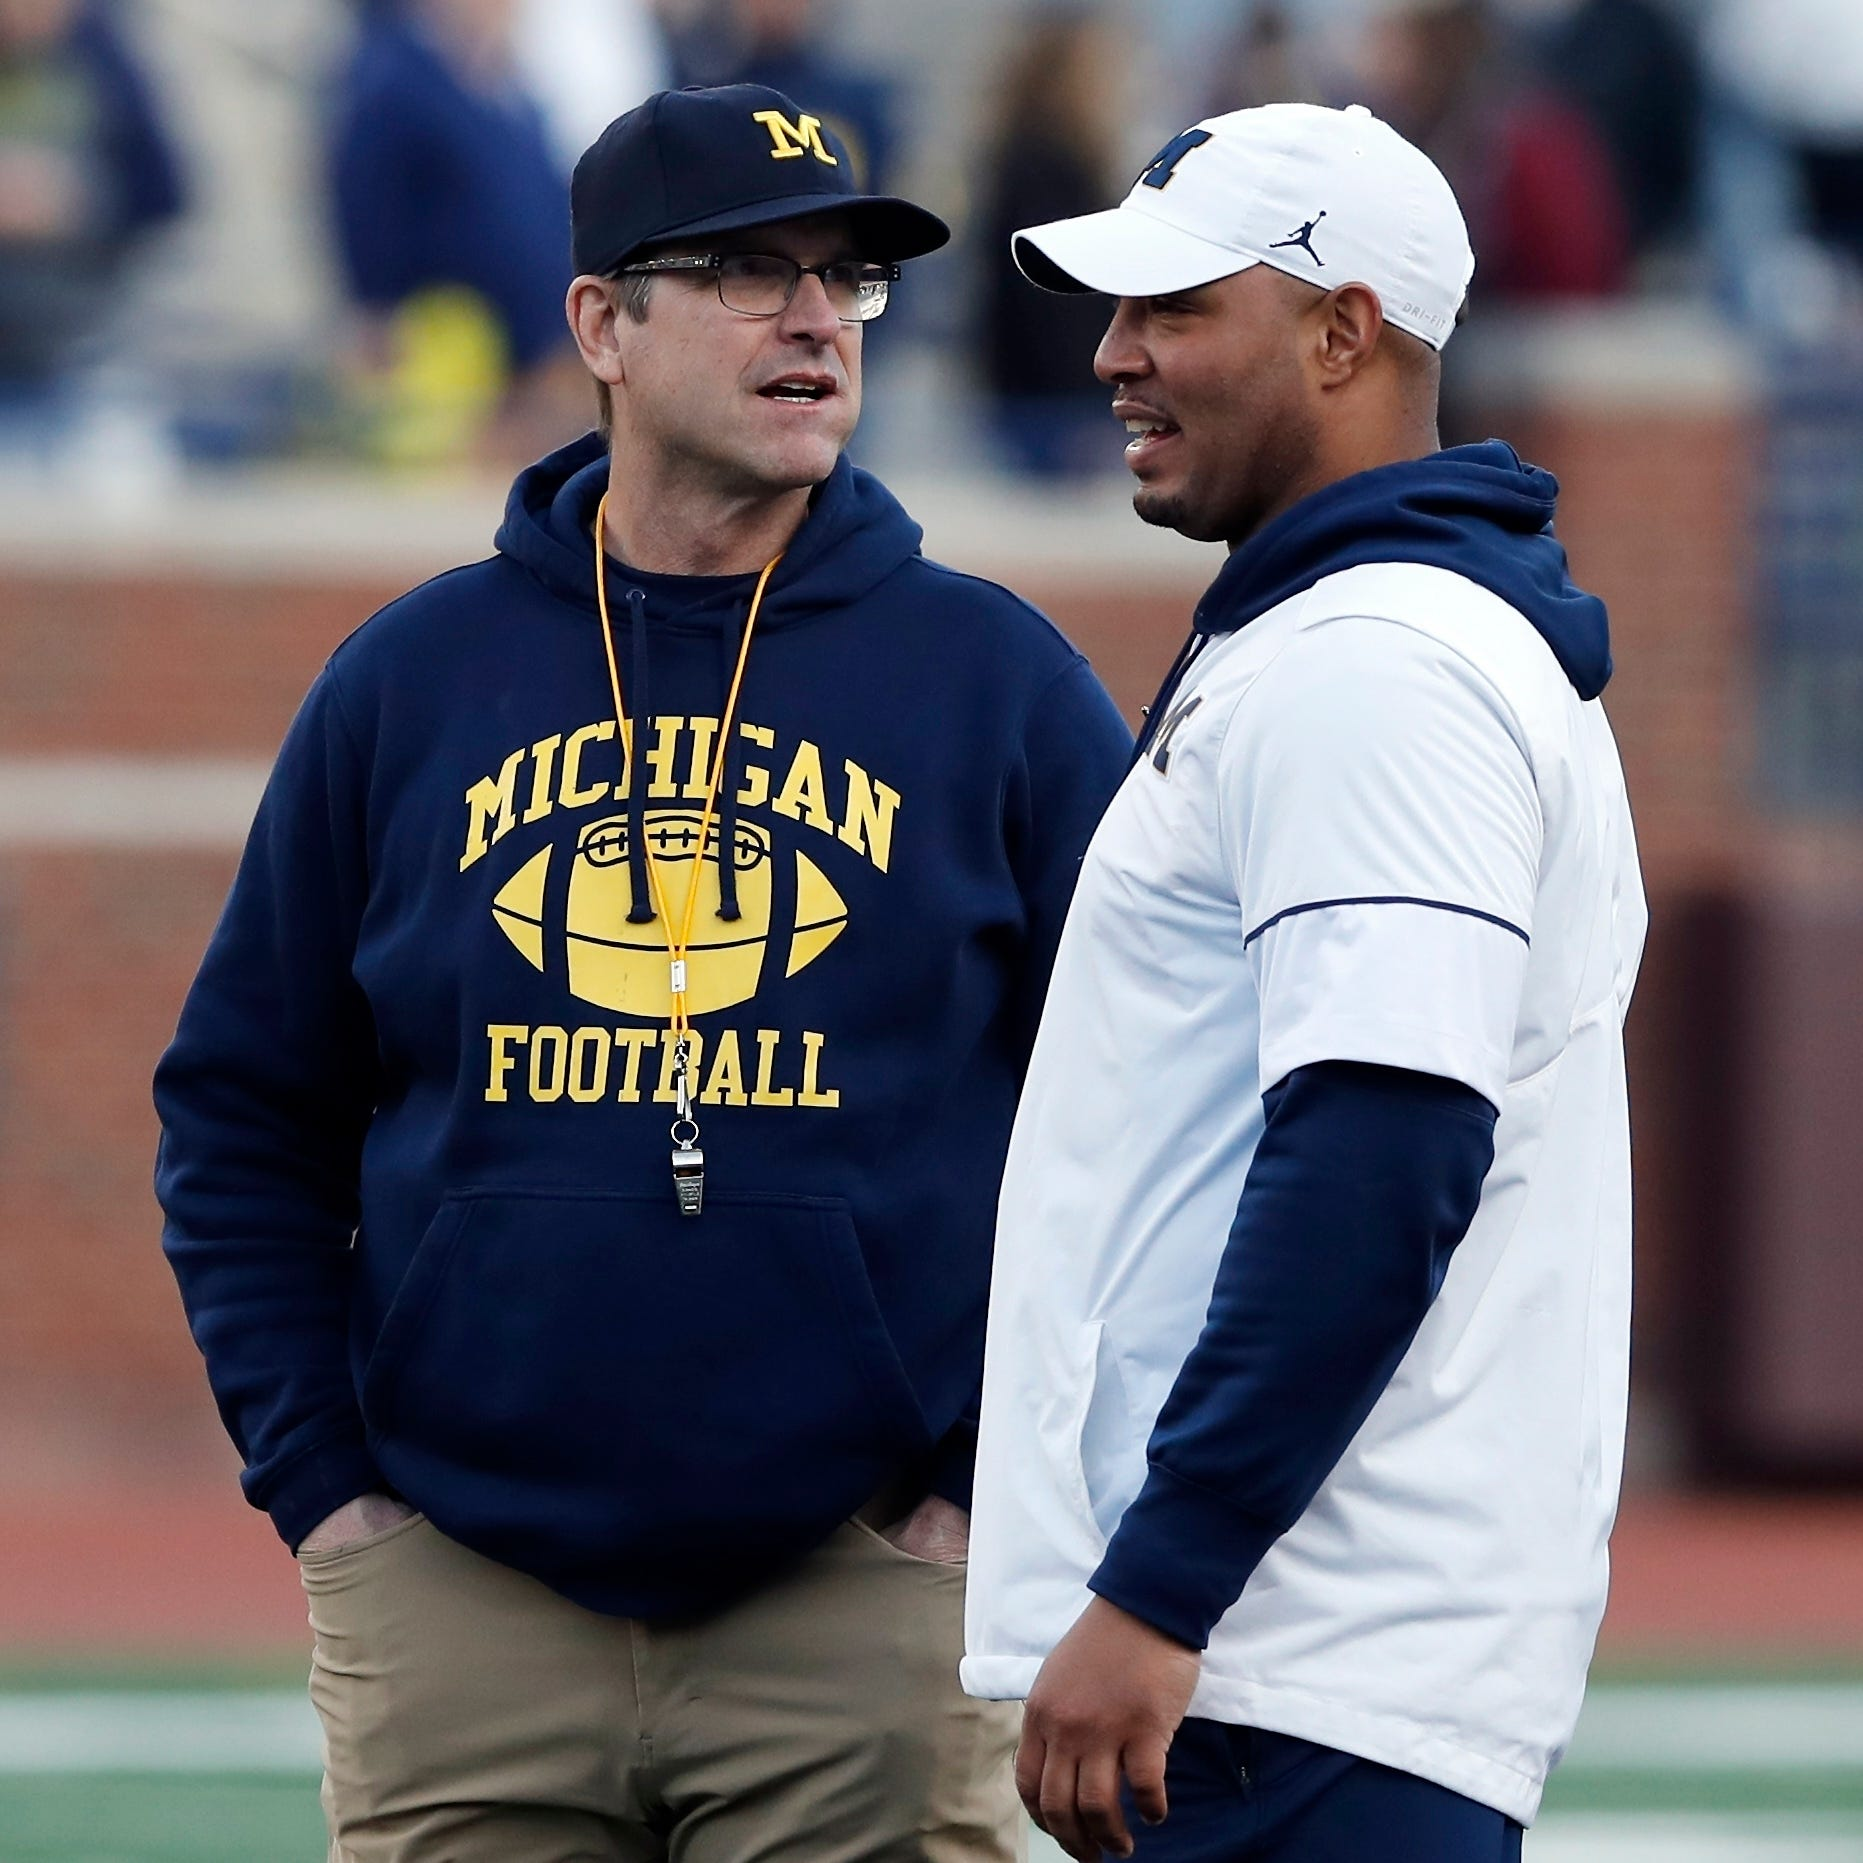 Michigan football will win Big Ten, reach College Football Playoff, says Athlon